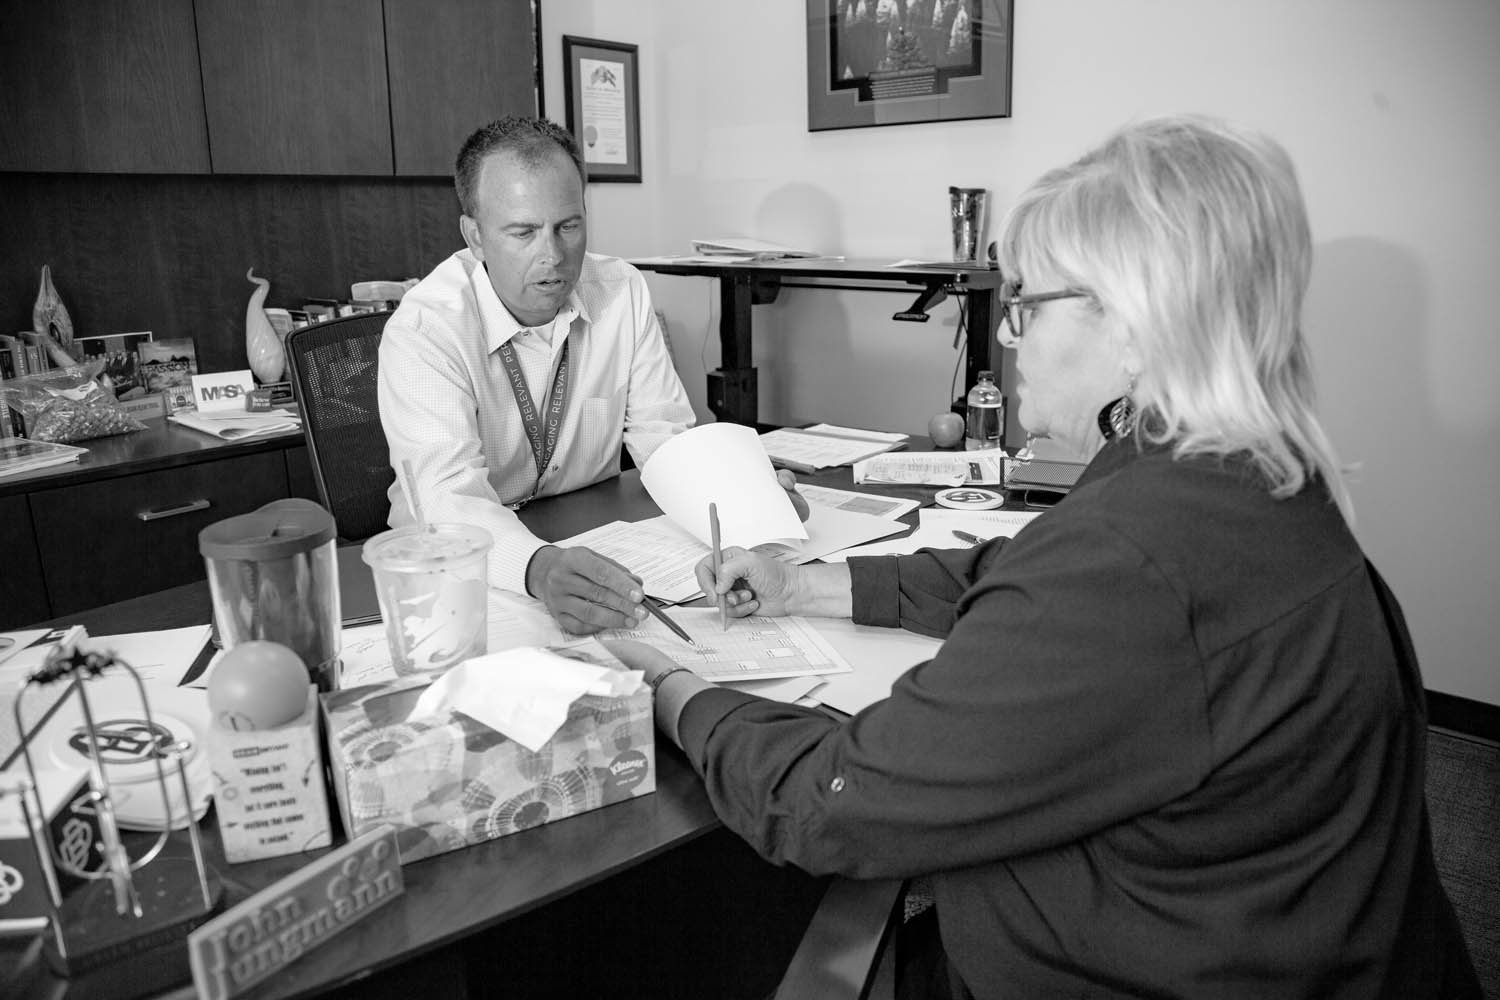 ON THE GO: Jungmann meets with Kathy Looten for upcoming travel plans. He has two work trips in July after he returns from a family vacation.